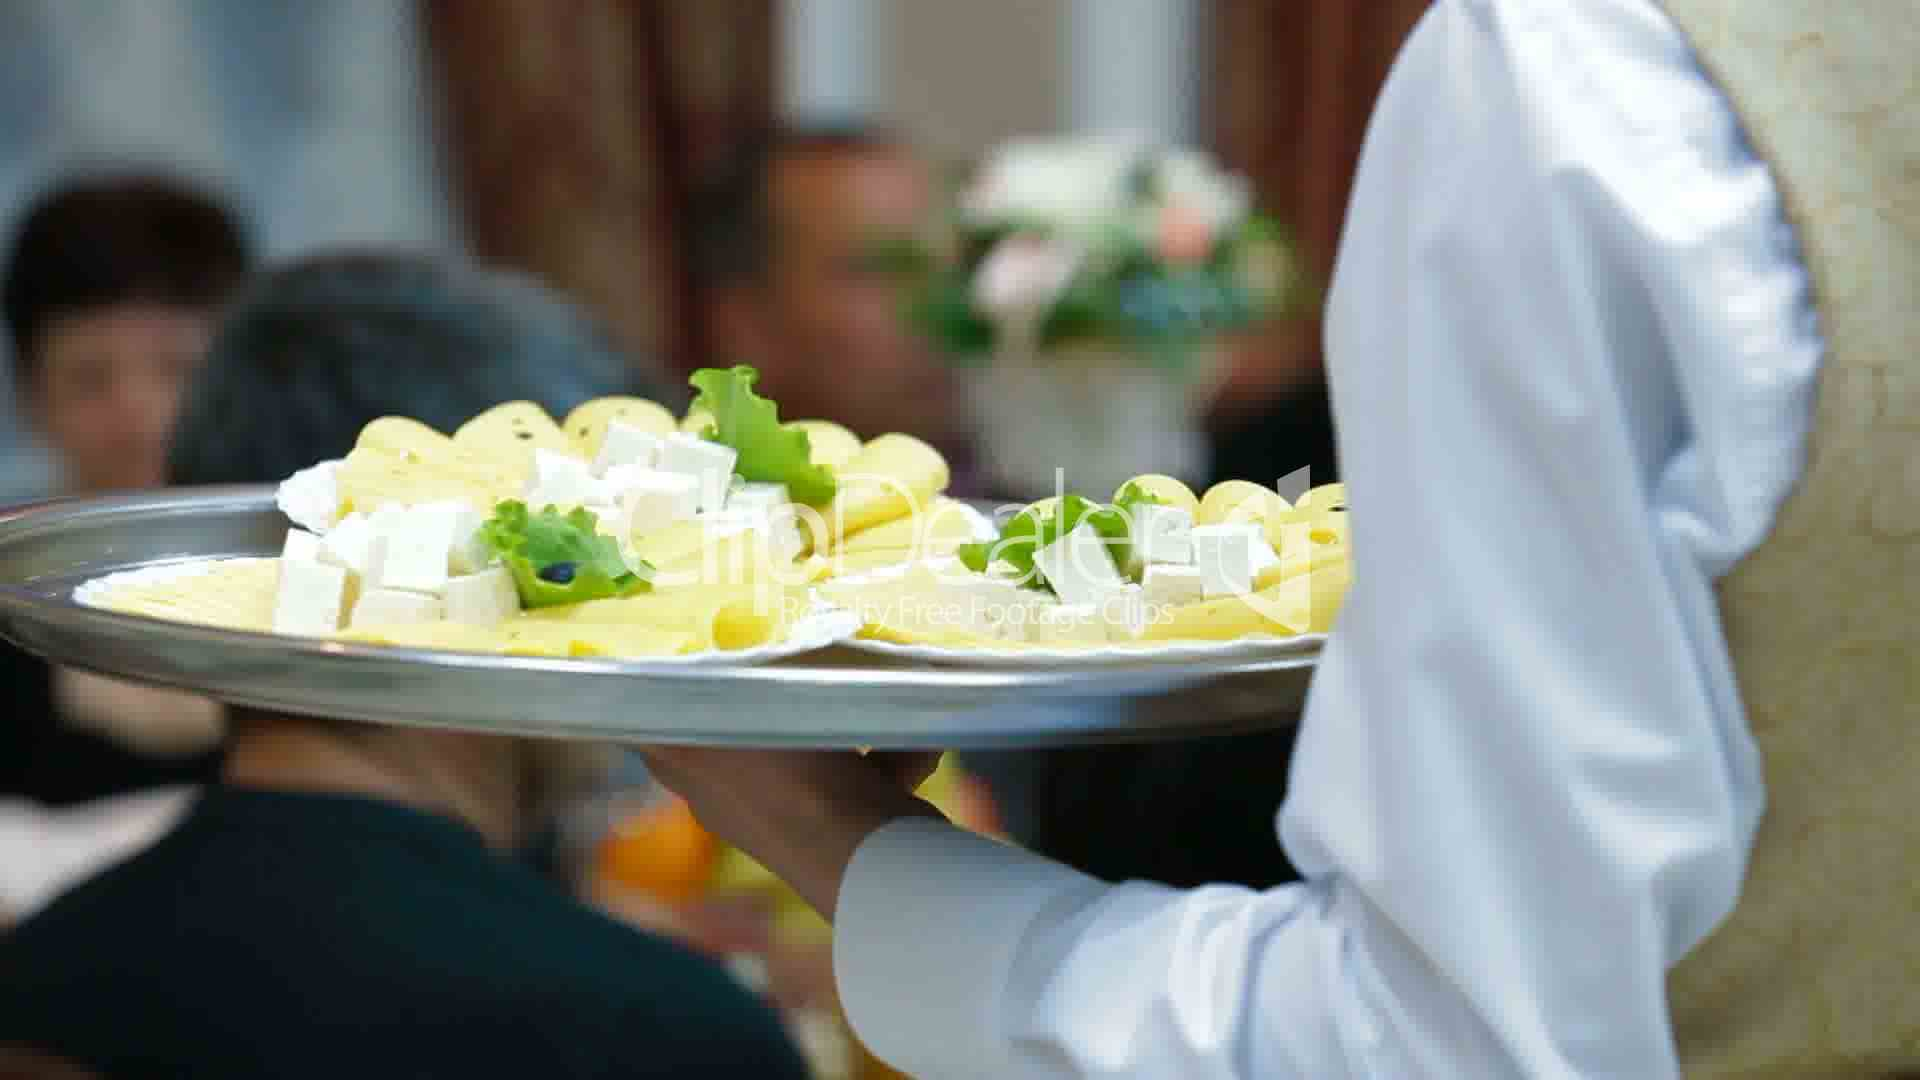 Waiters serving reception Royaltyfree video and stock footage